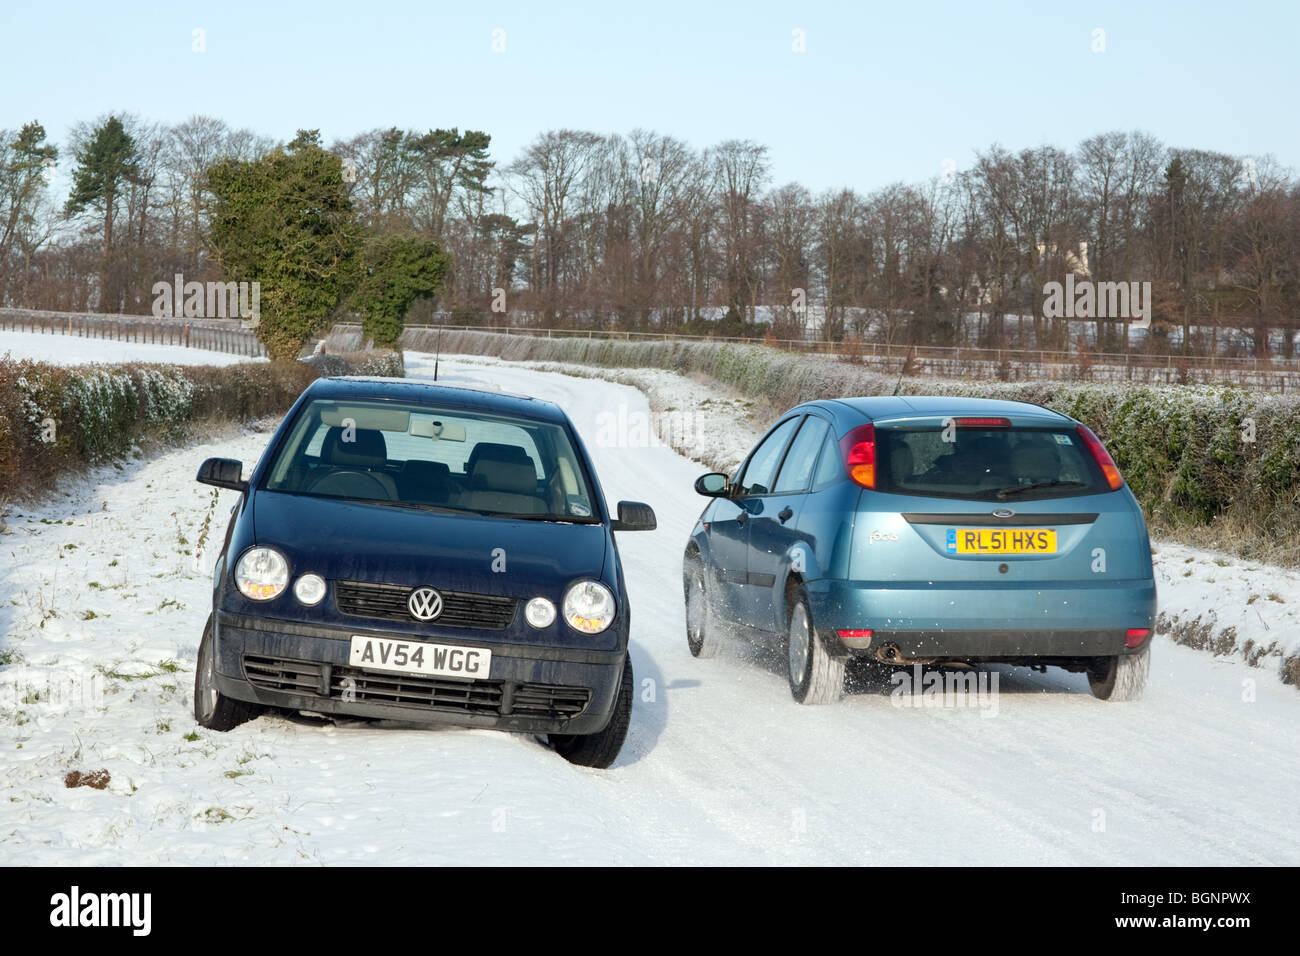 A car drives past a parked car in snow on a country road, Newmarket Suffolk, UK - Stock Image